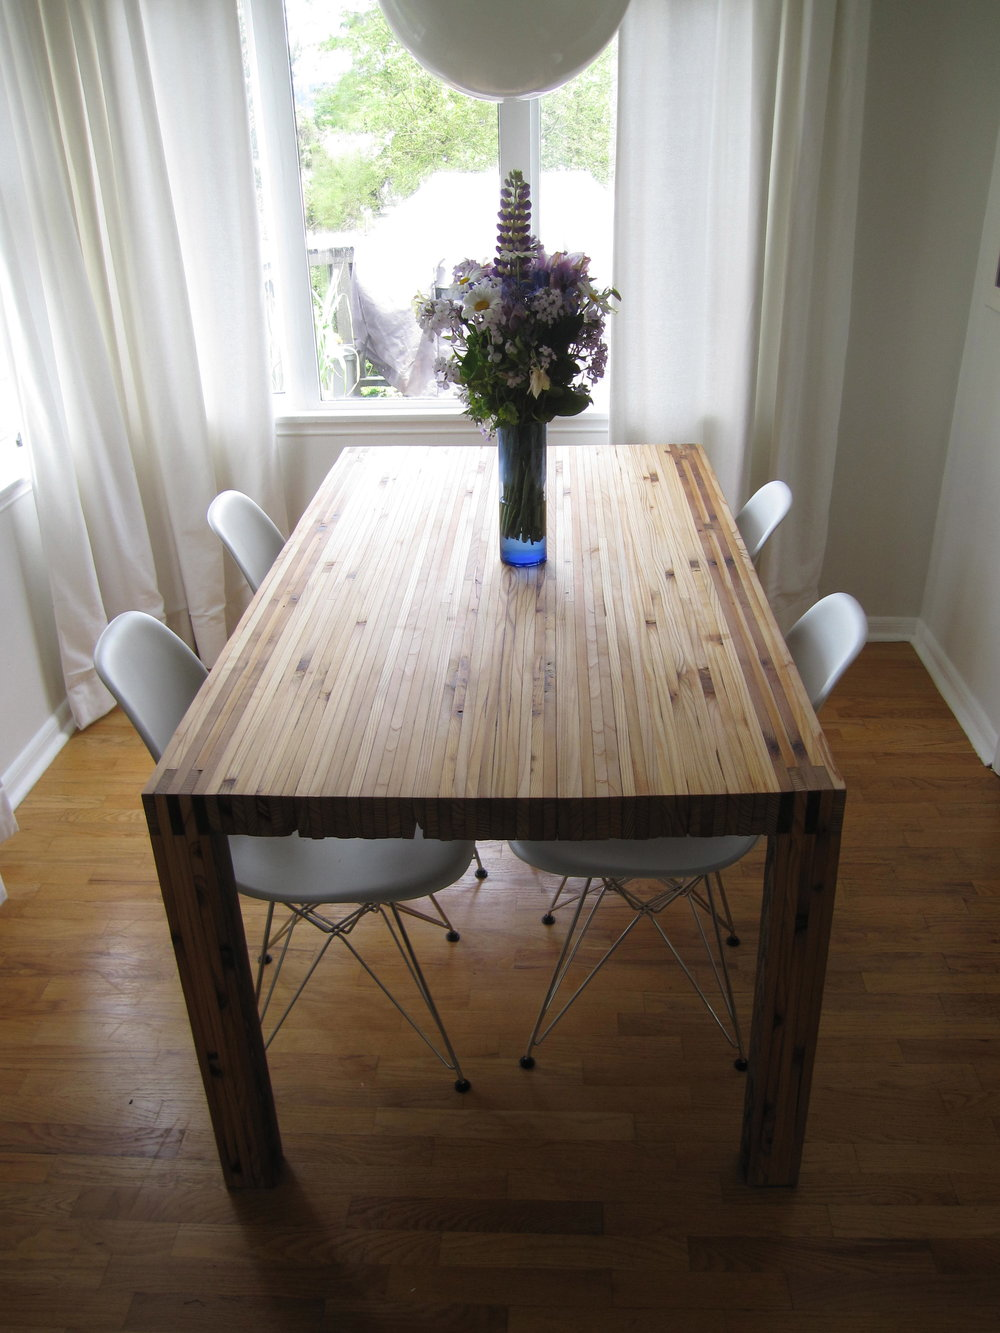 table-in-michael-and-kari-lises-dining-room_7243257060_o.jpg